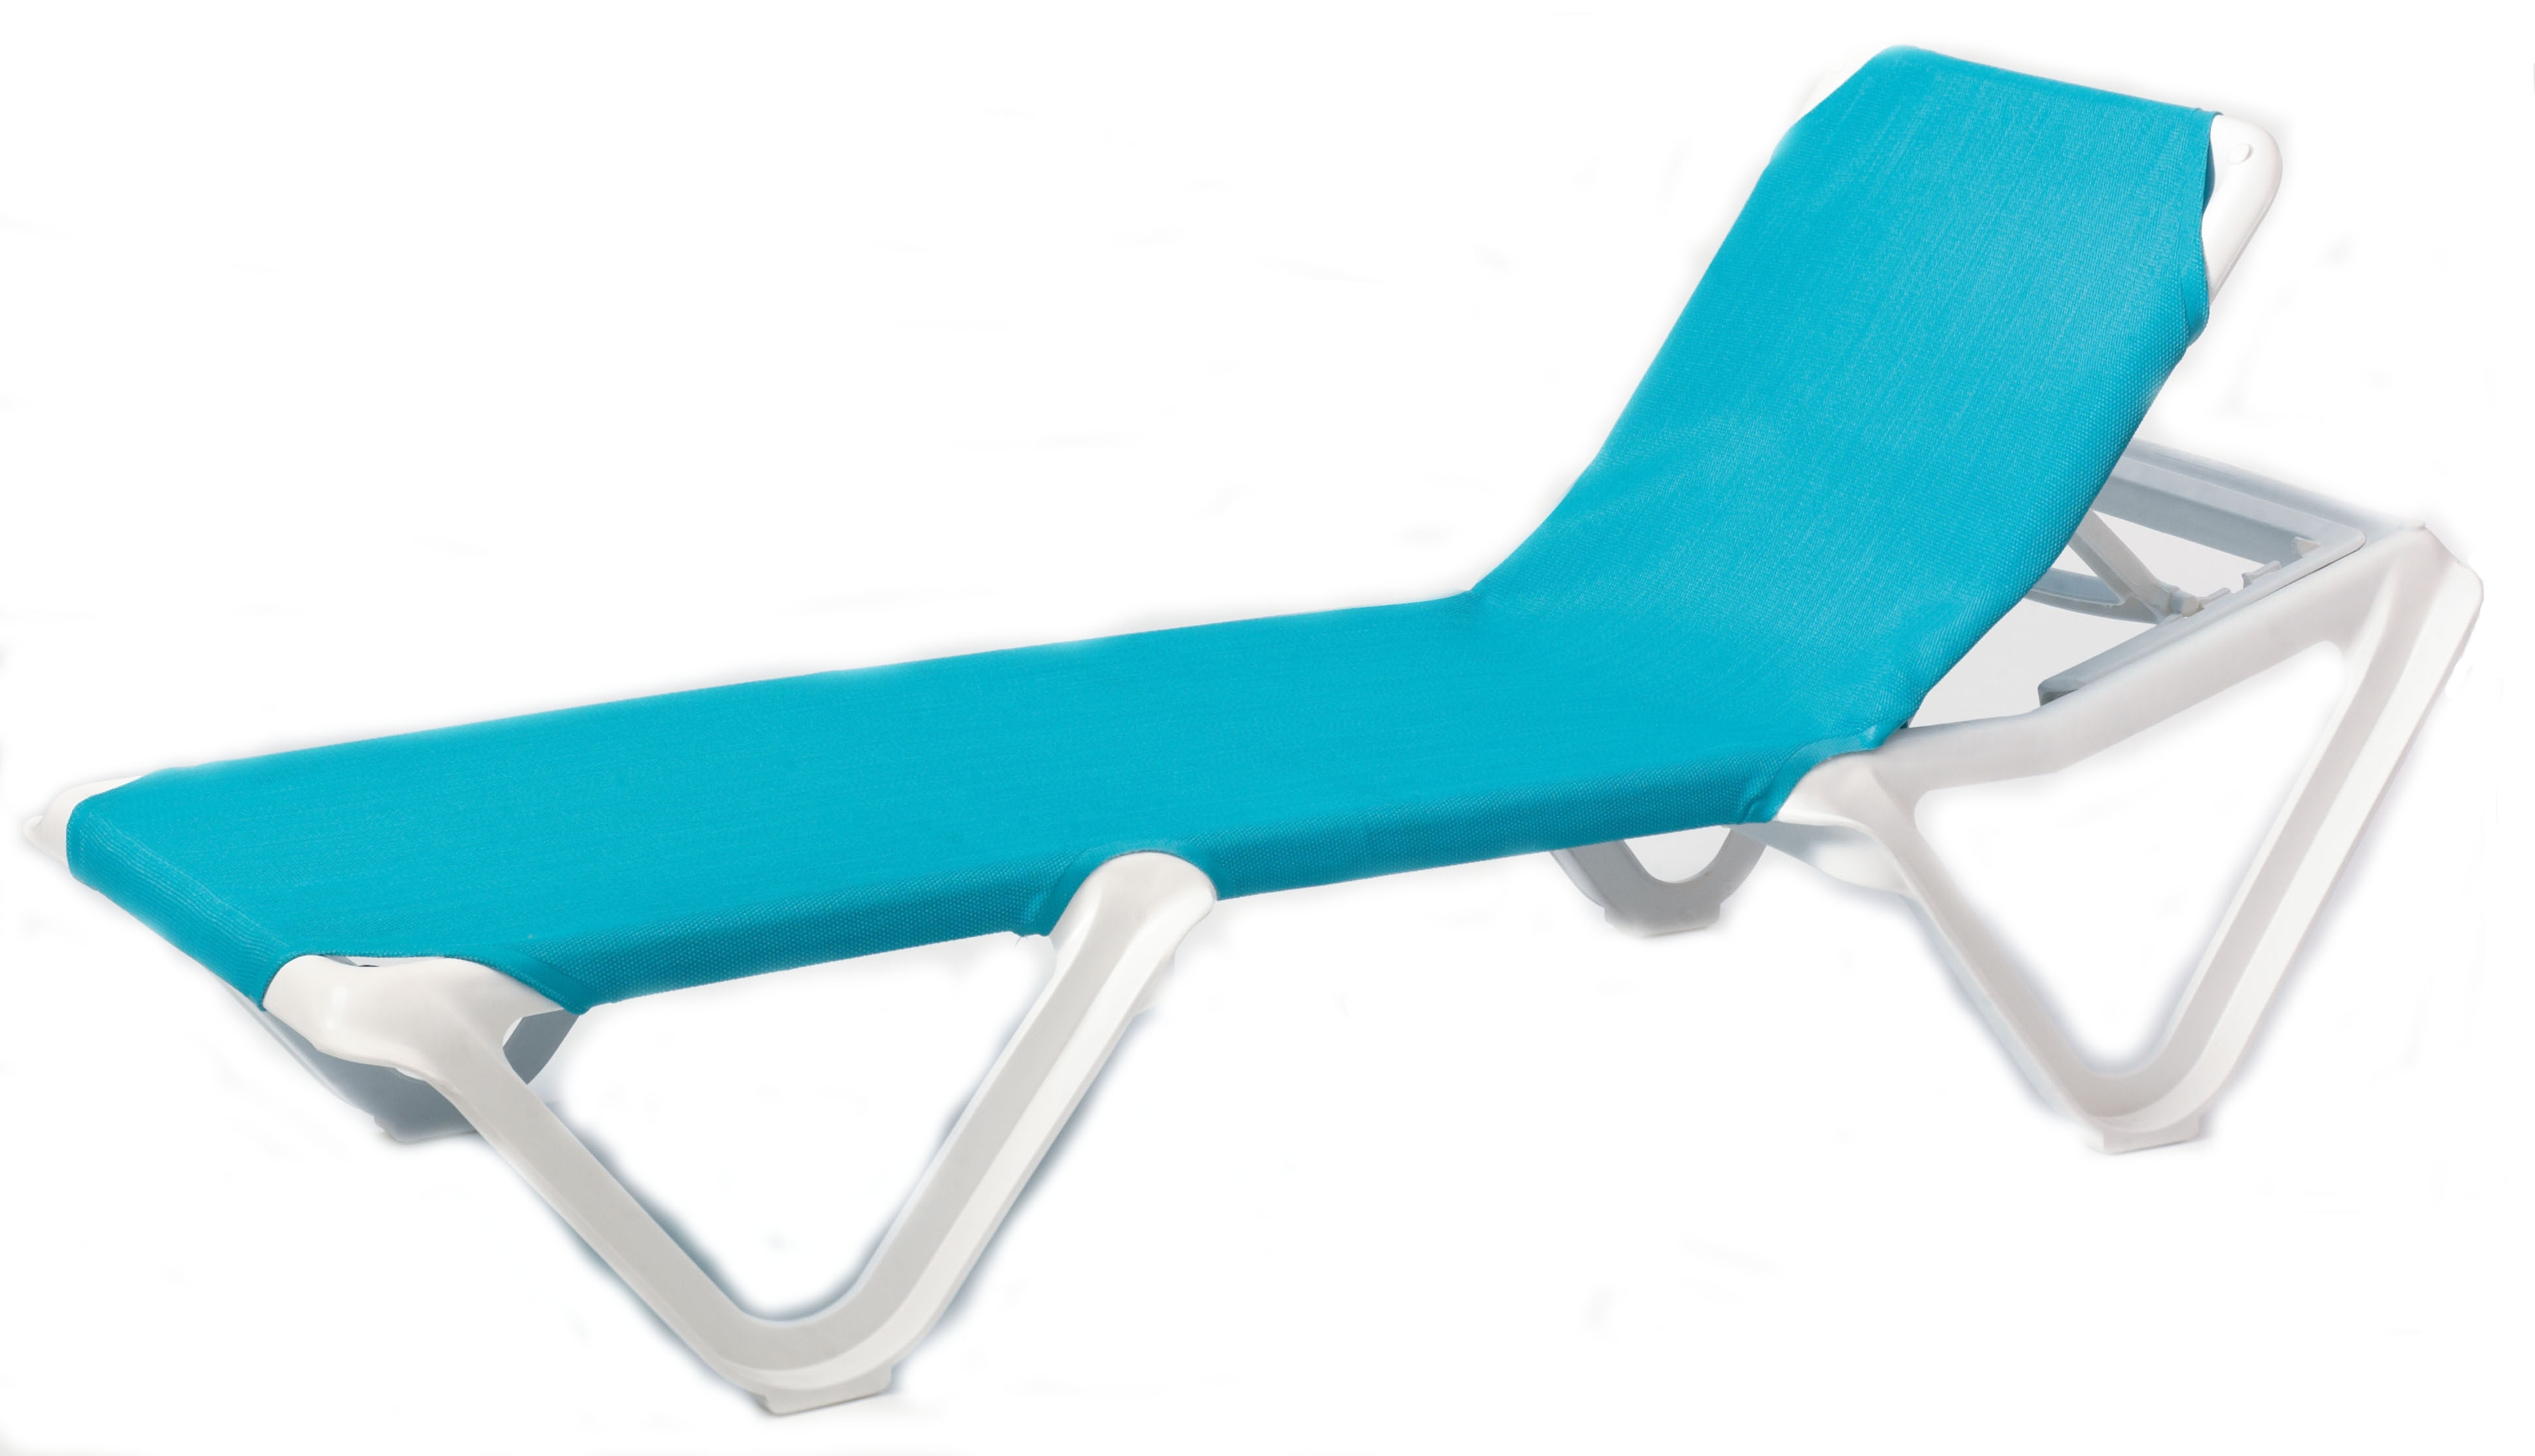 Popular Chaise Lounge Chairs Without Arms Regarding Grosfillex Nautical Adjustable Resin Sling Chaise Lounge Chair W/o (View 13 of 15)